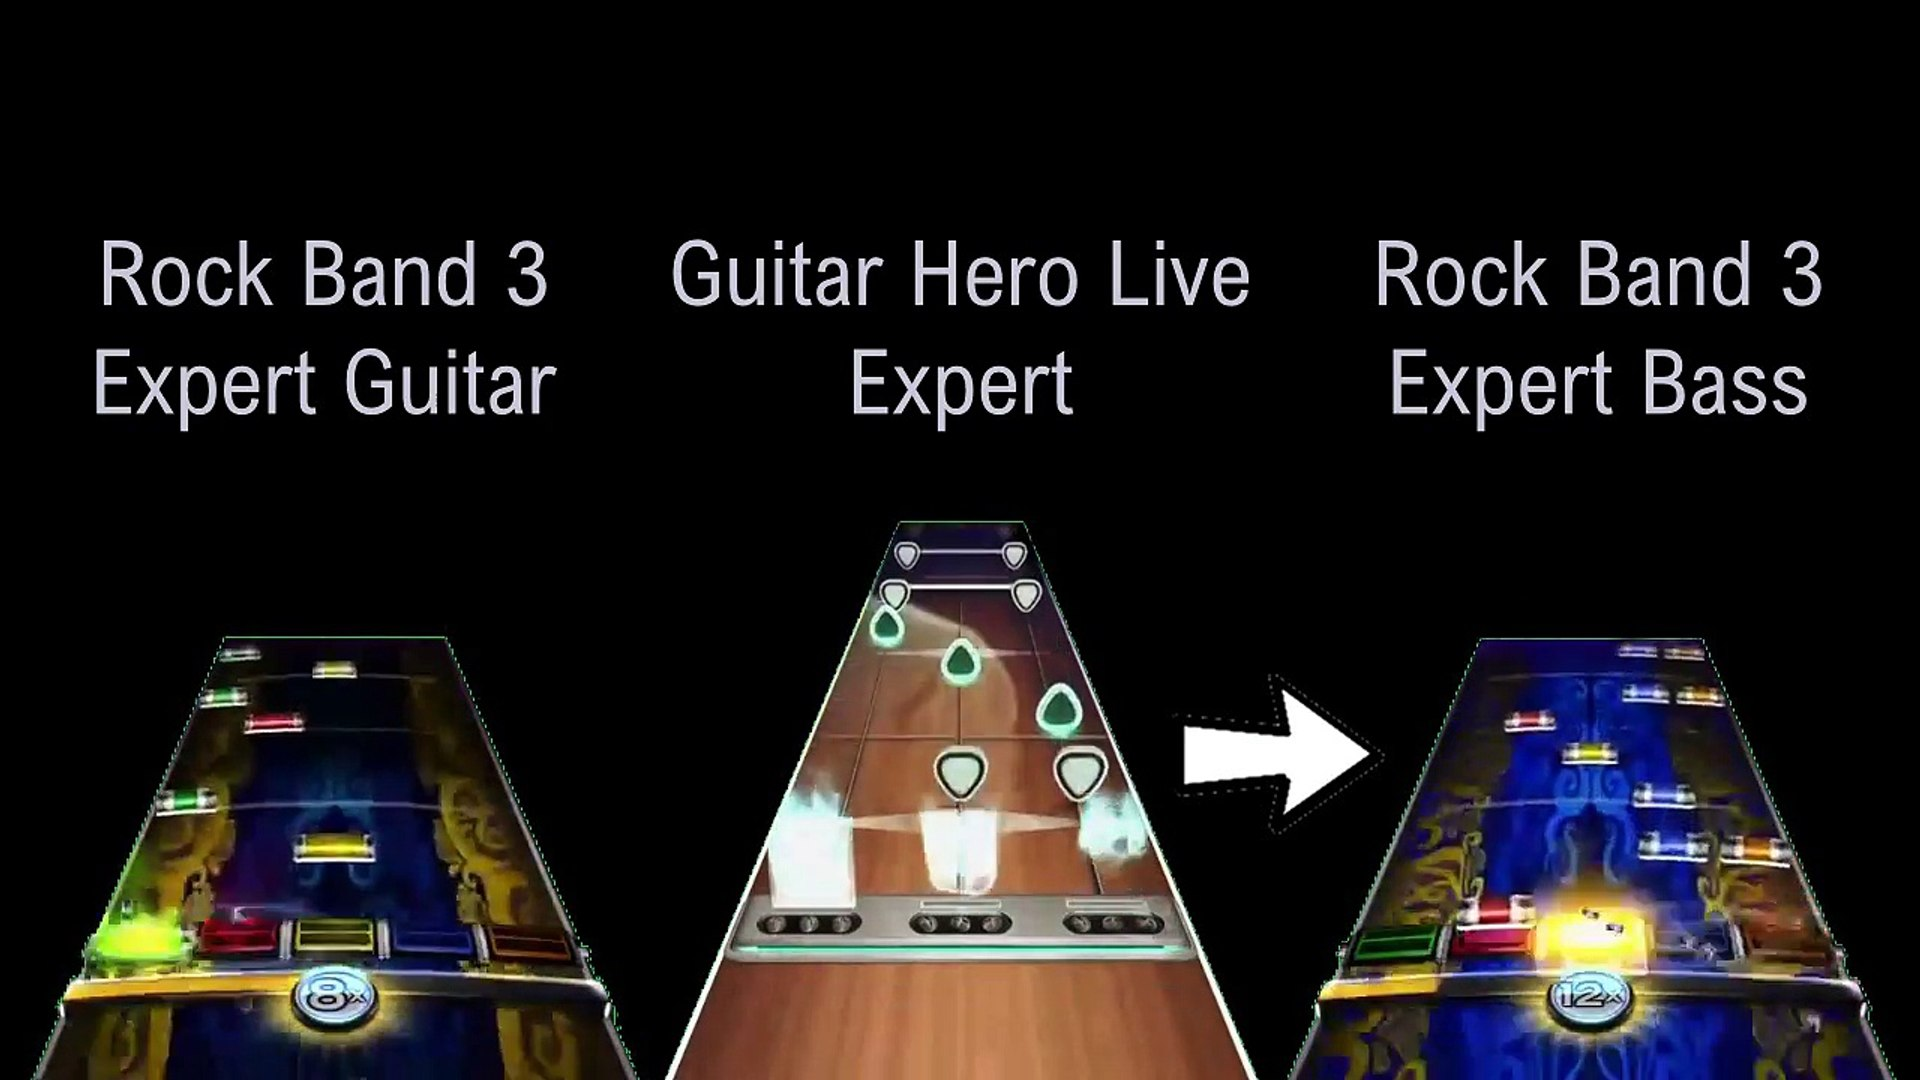 Primus Jerry Was A Race Car Driver Rock Band 3 V Guitar Hero Live Expert Chart Comparison Video Dailymotion